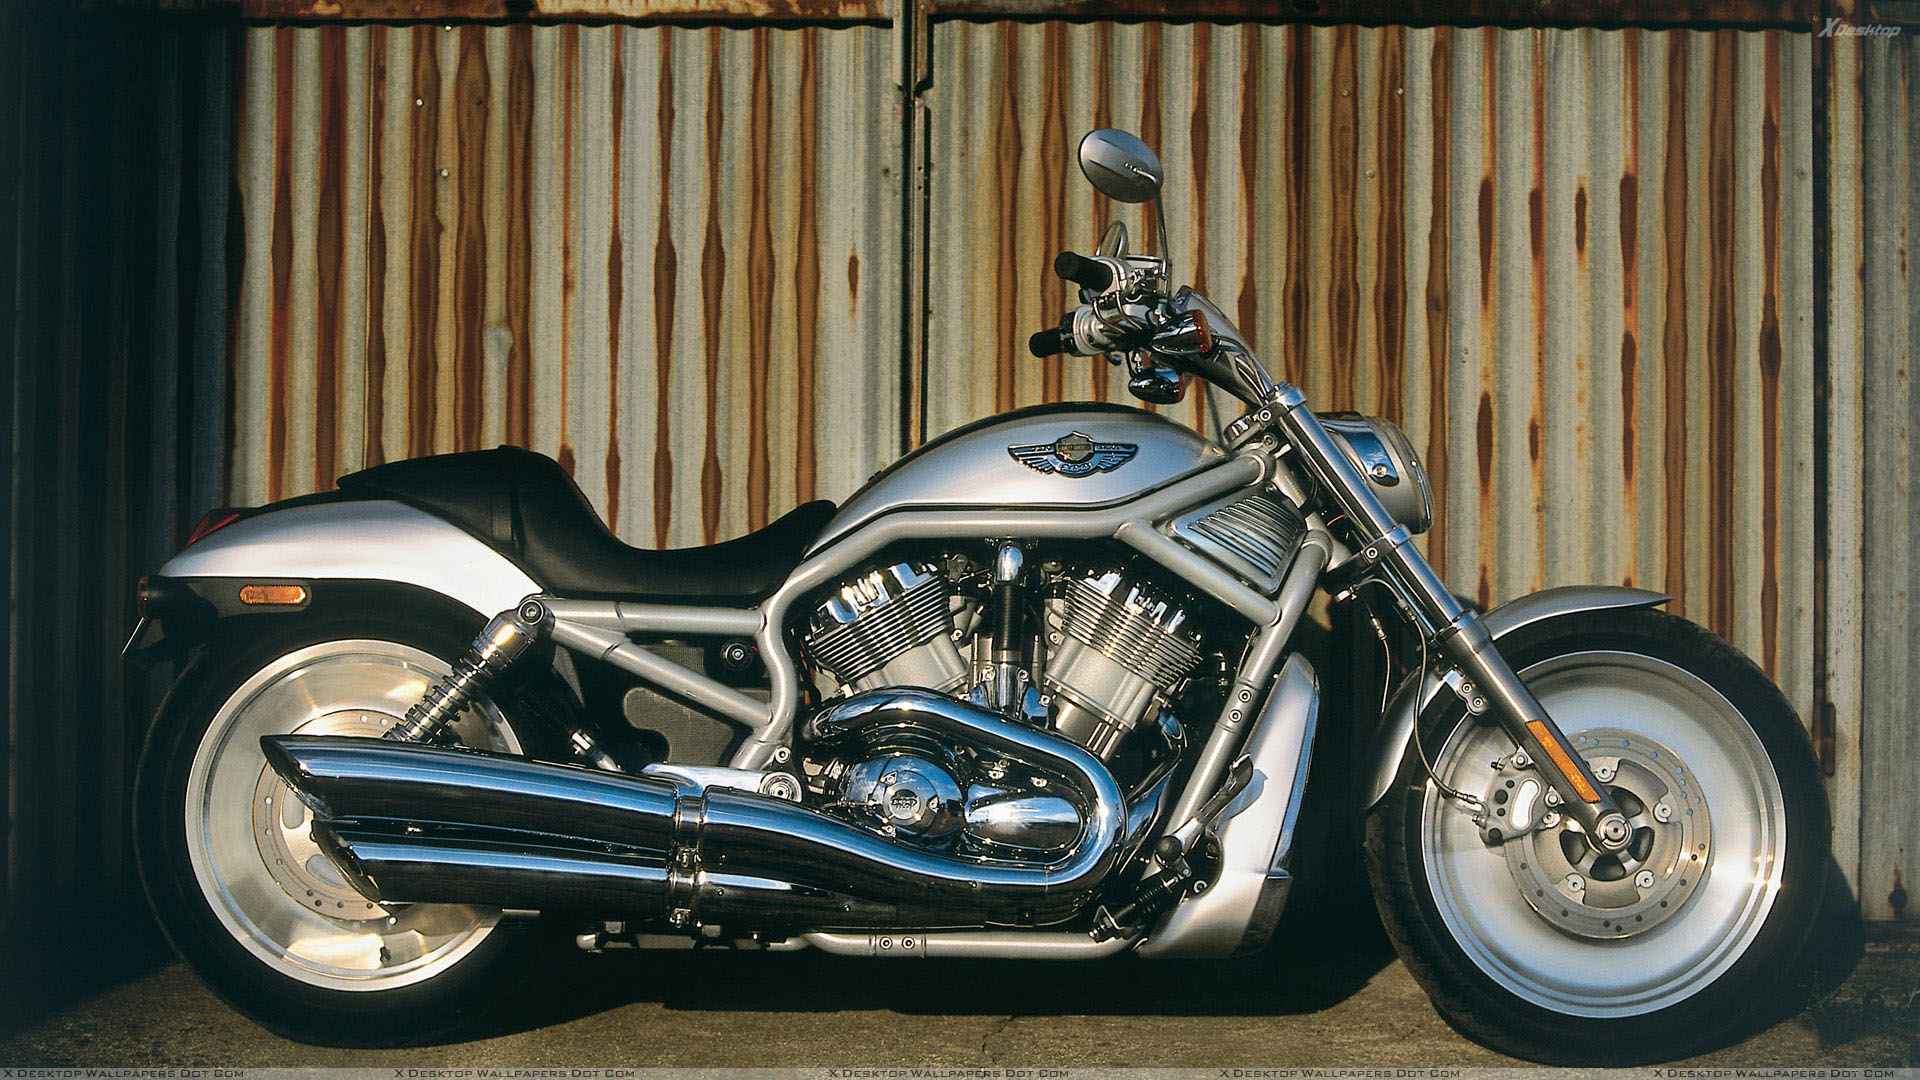 Harley Davidson Night Rod 2003 1920x1080 Wallpaper Teahub Io